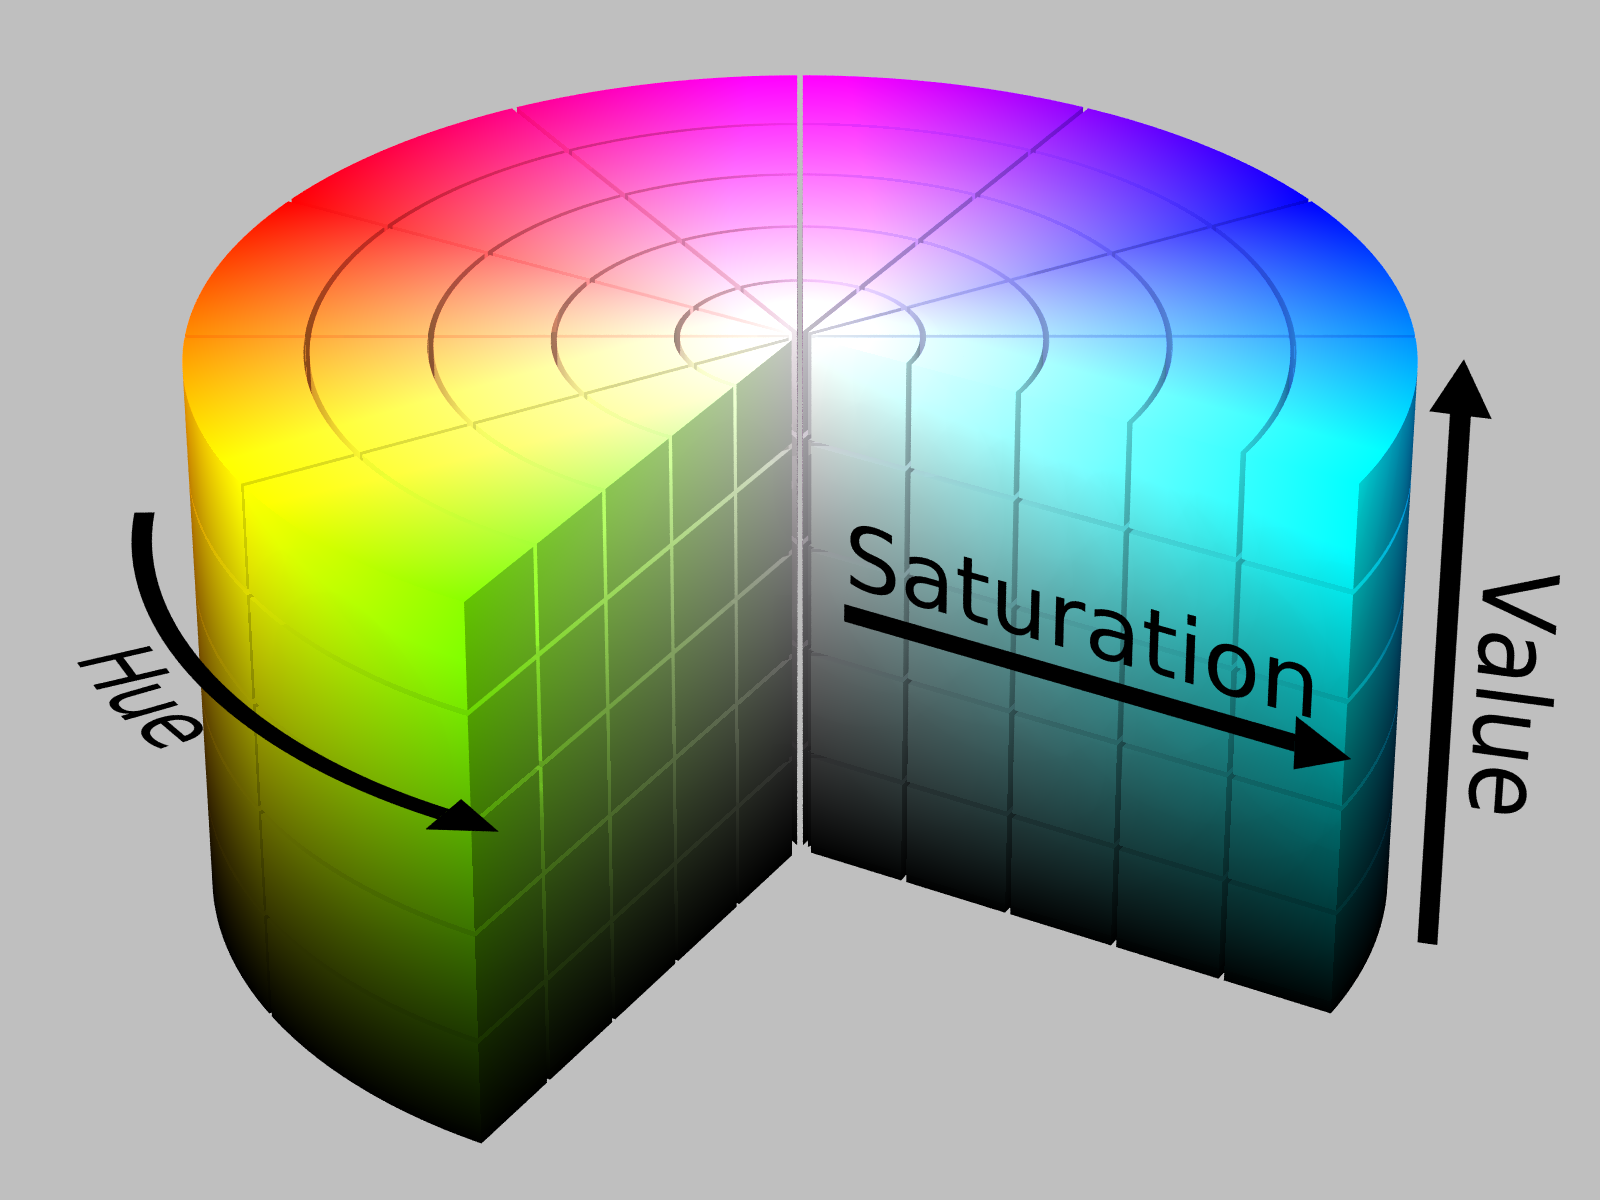 Difference Between Hue and Saturation